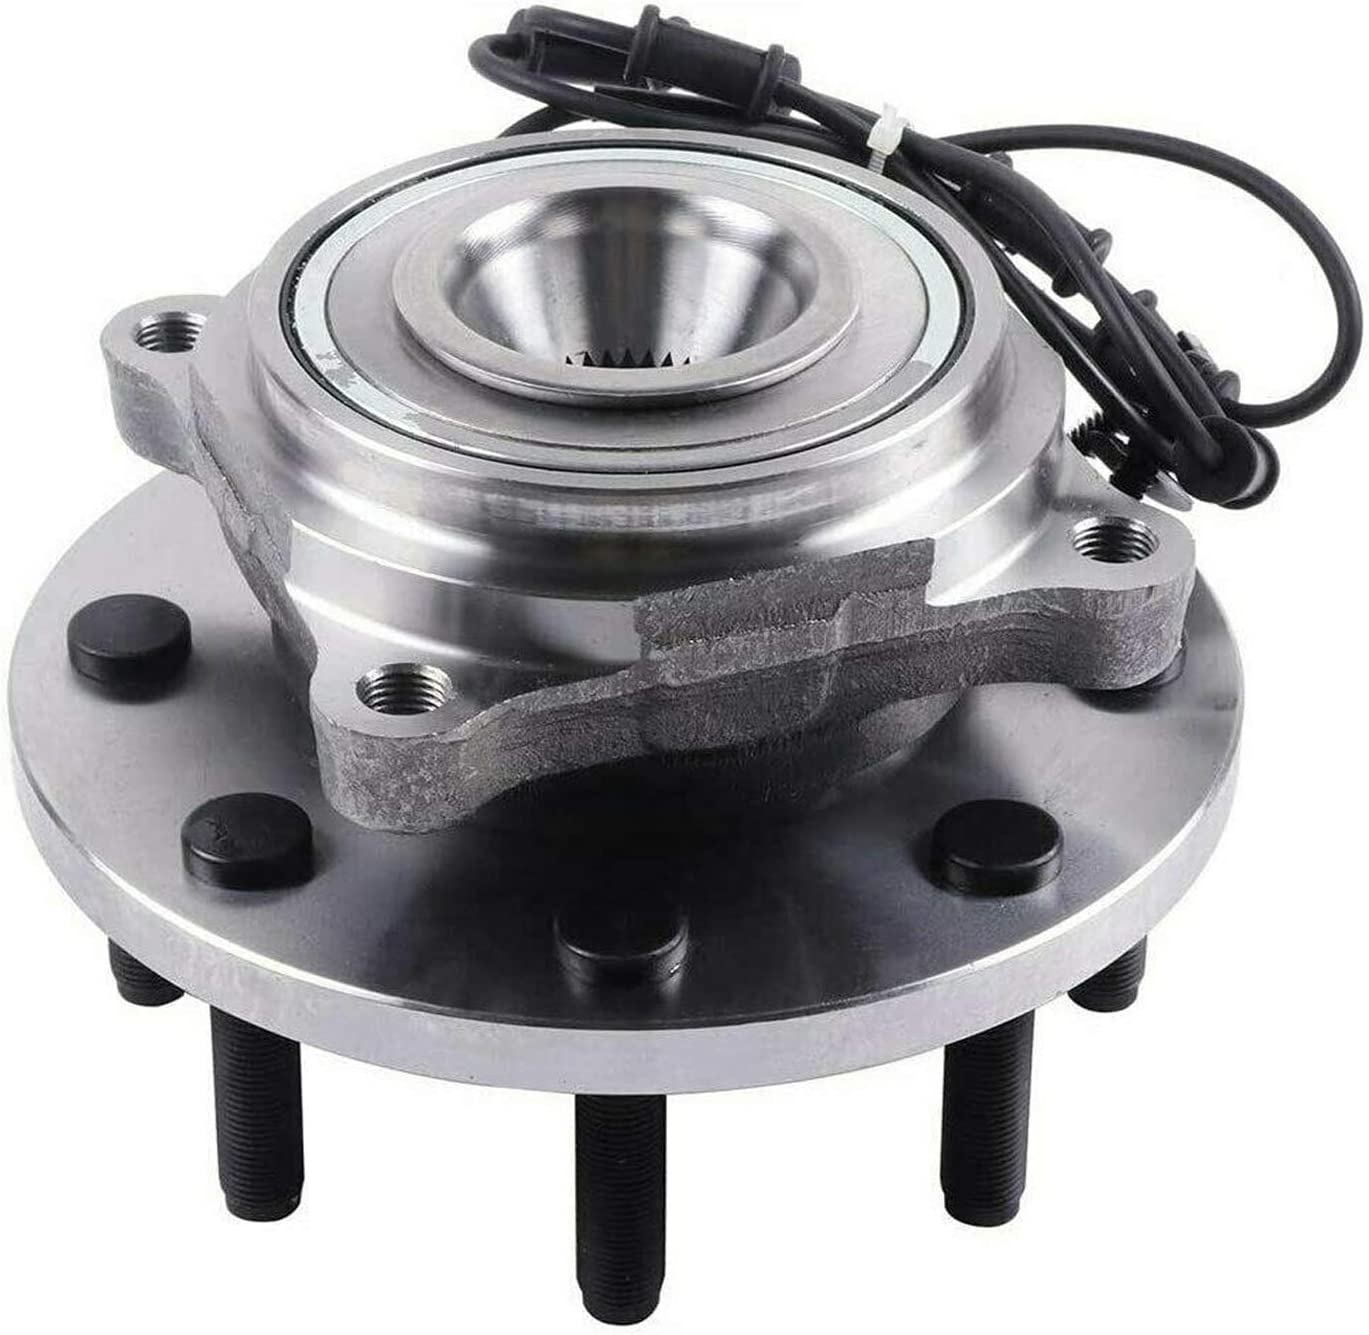 Bodeman Oakland Mall free shipping - Front Wheel Hub Bearing for 2011 2010 2009 Assembly